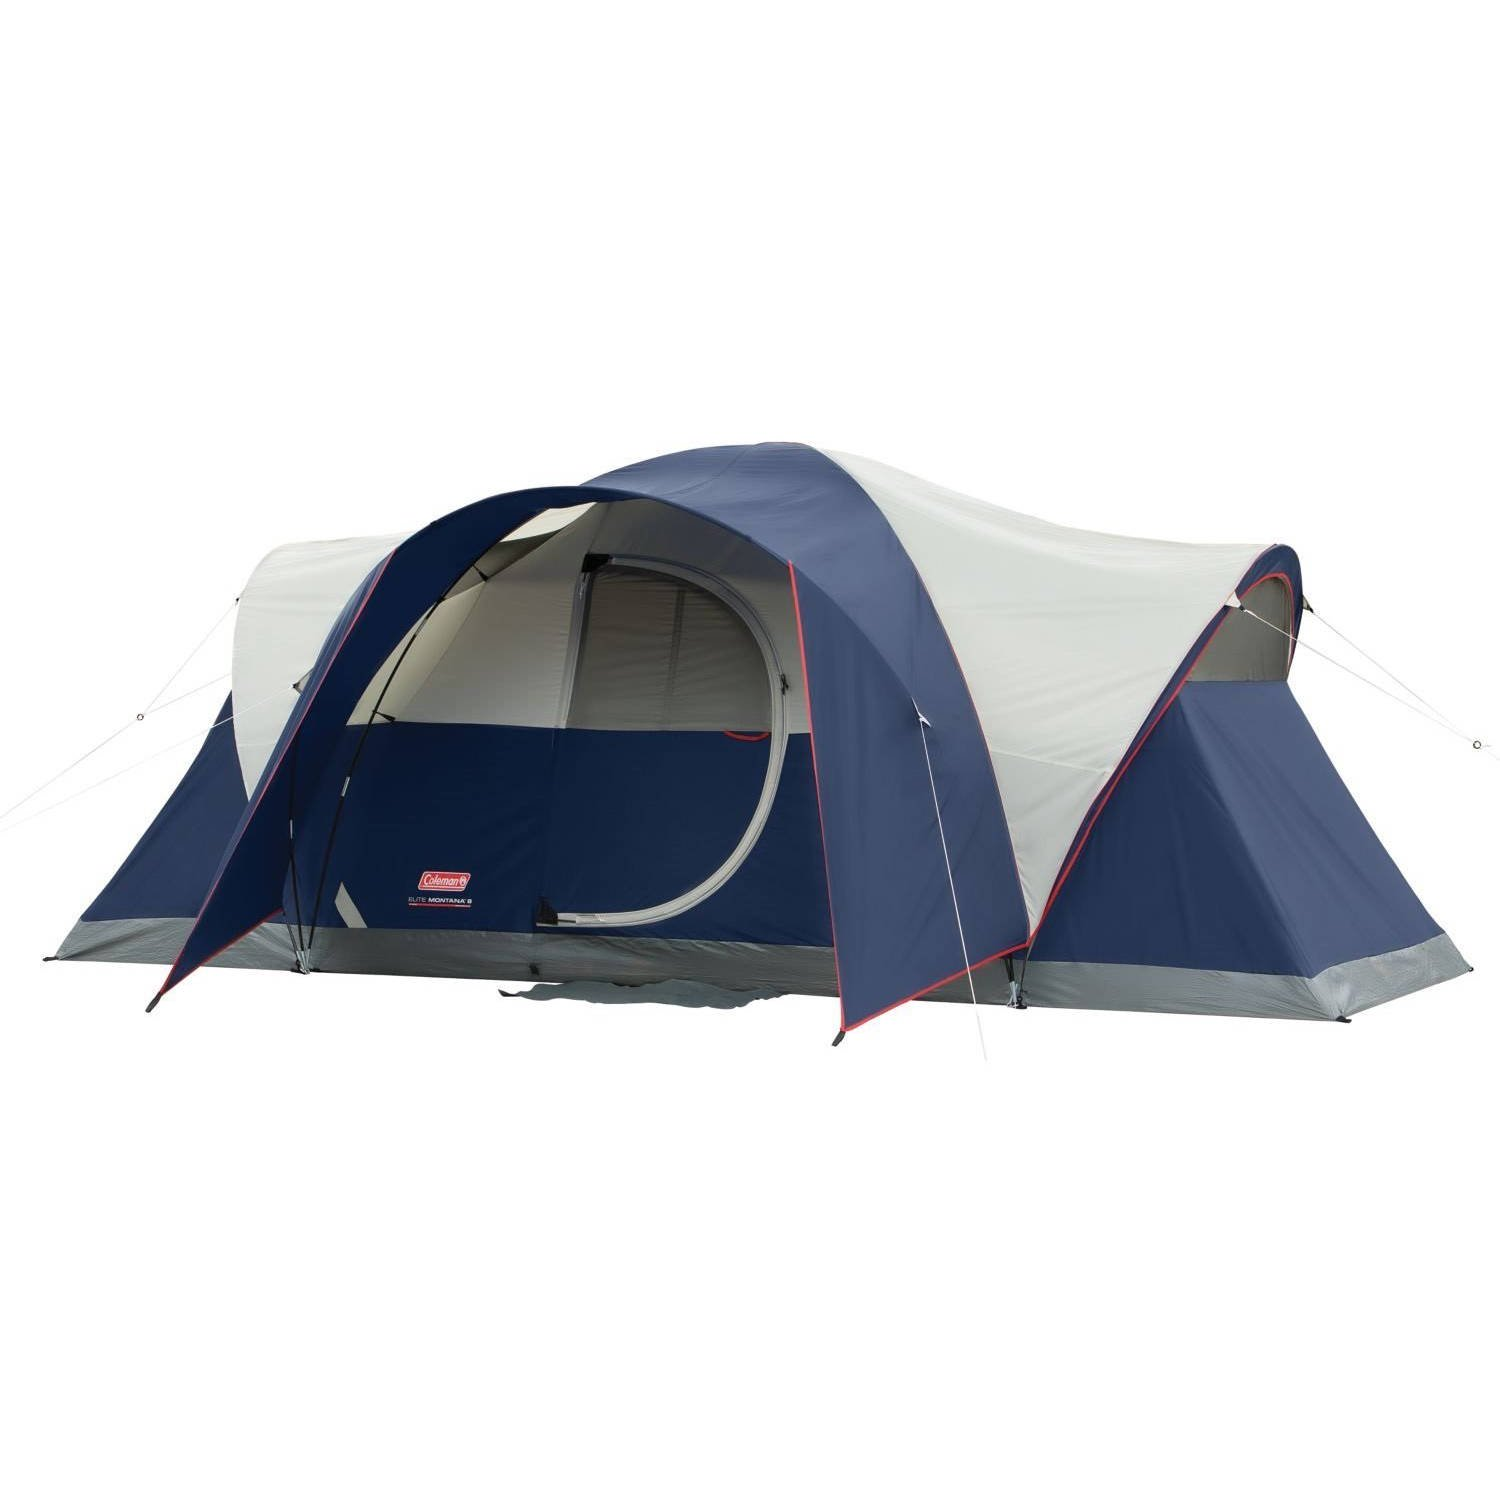 Charmant Coleman Elite Montana 8 Person Dome Tent With LED Light